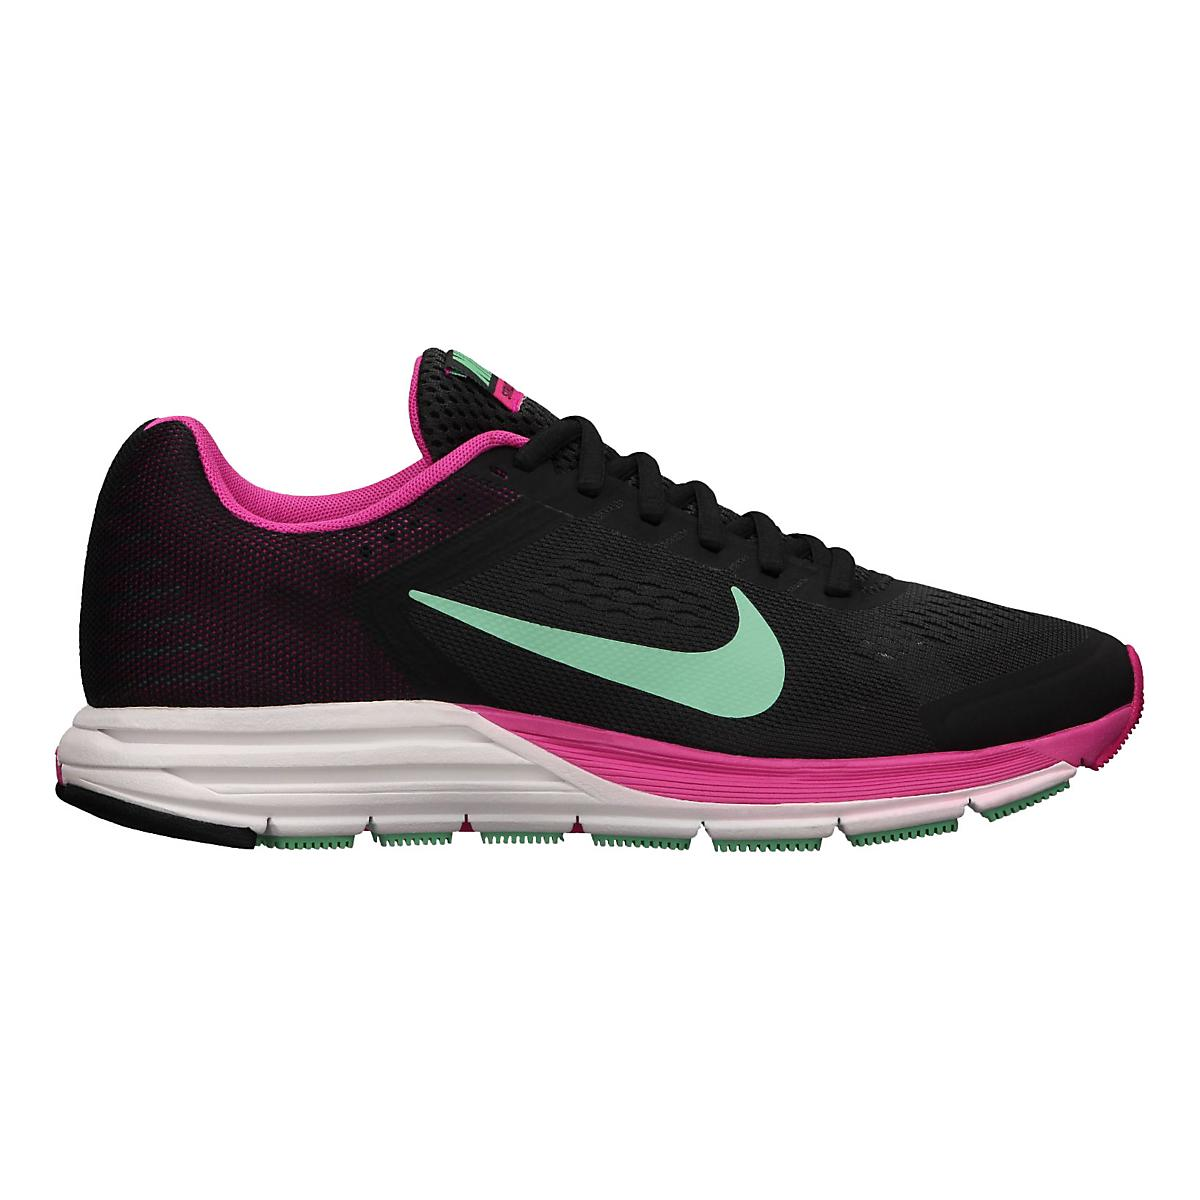 Innovative GreyCoral Nike Women39s Running Shoes  Get Fit  Pinterest